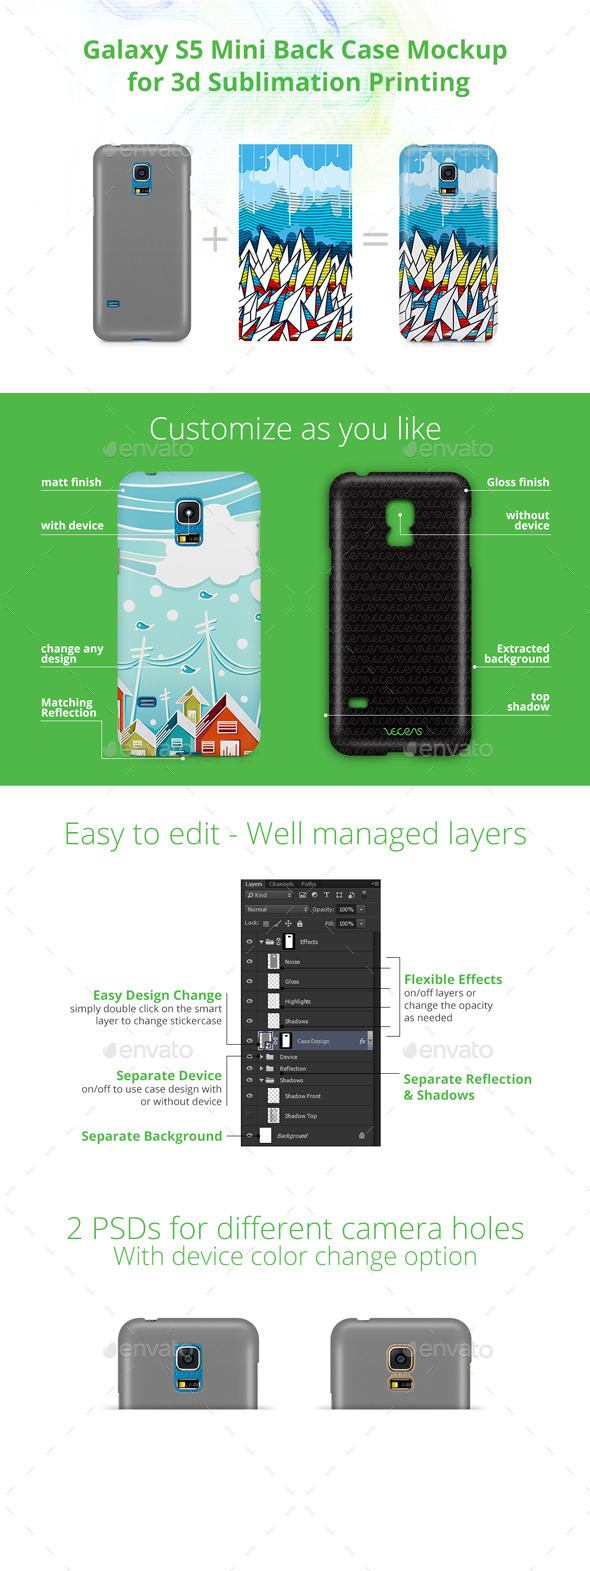 Galaxy S5 Mini Case Design Mockup for 3d Sublimation Printing - Back View - Mobile Displays